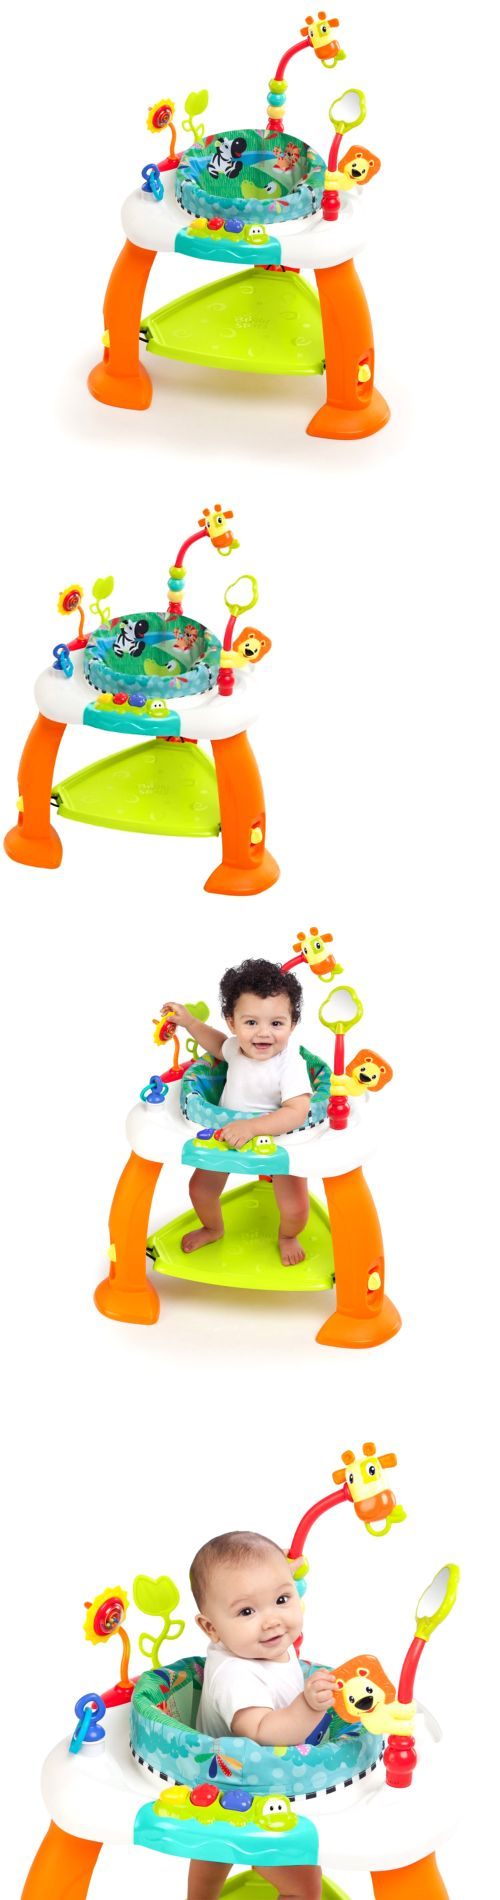 40db69835 Baby Exercise Bouncer Jumper Exersaucer Child Learning Activity Pad ...